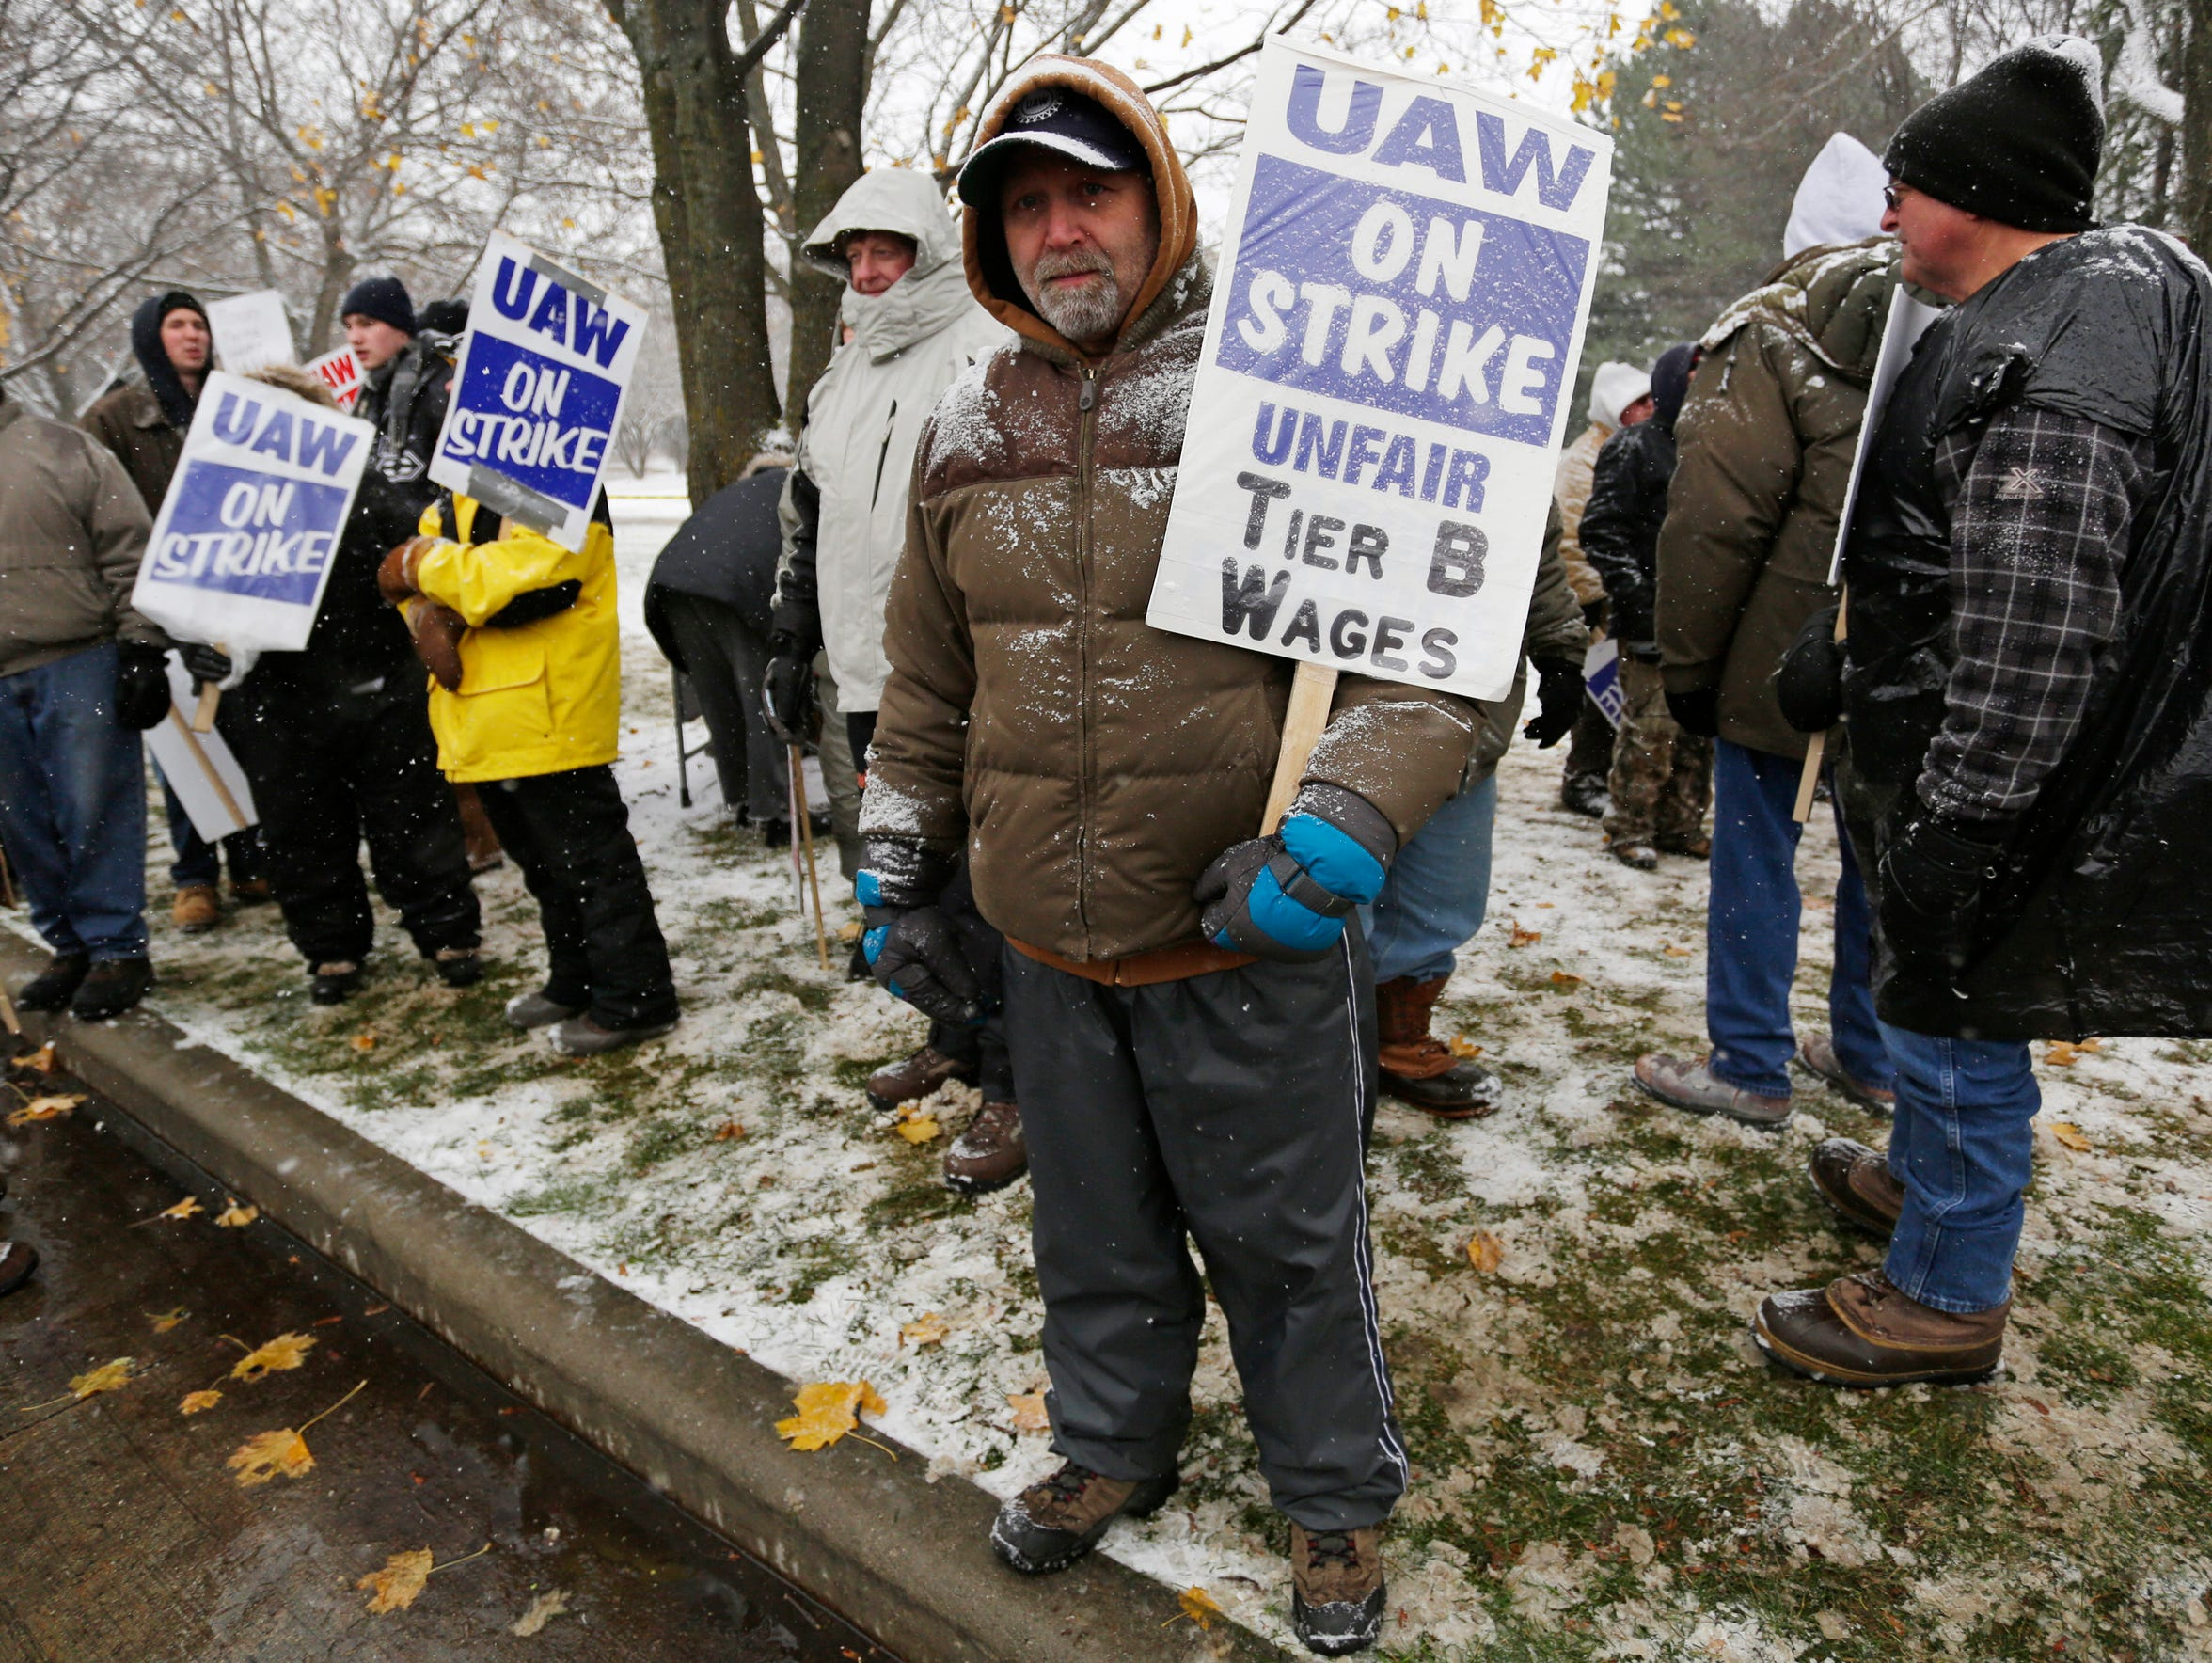 UAW Local 833 members attend a rally for a fair contract